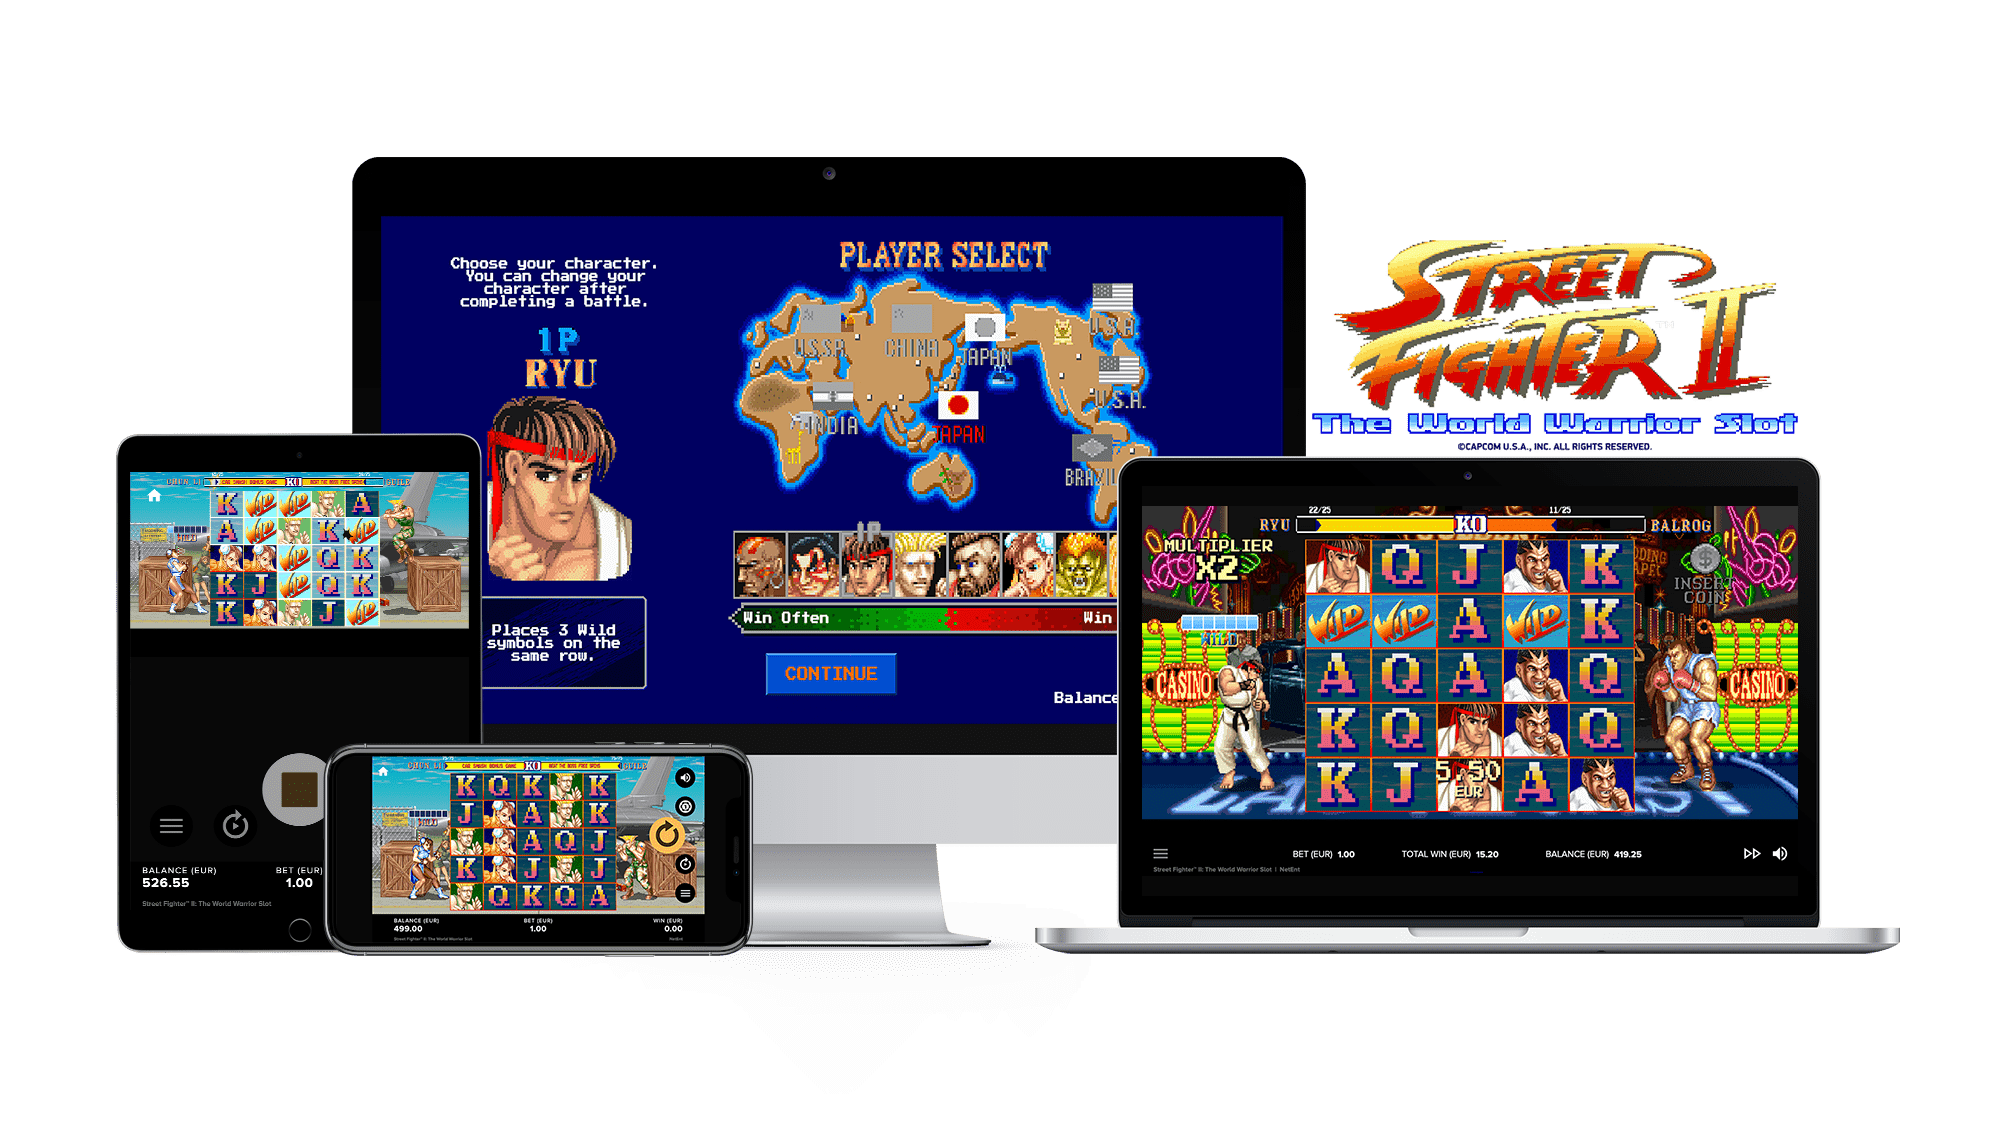 Street Fighter 2 The World Warrior Mobile slots